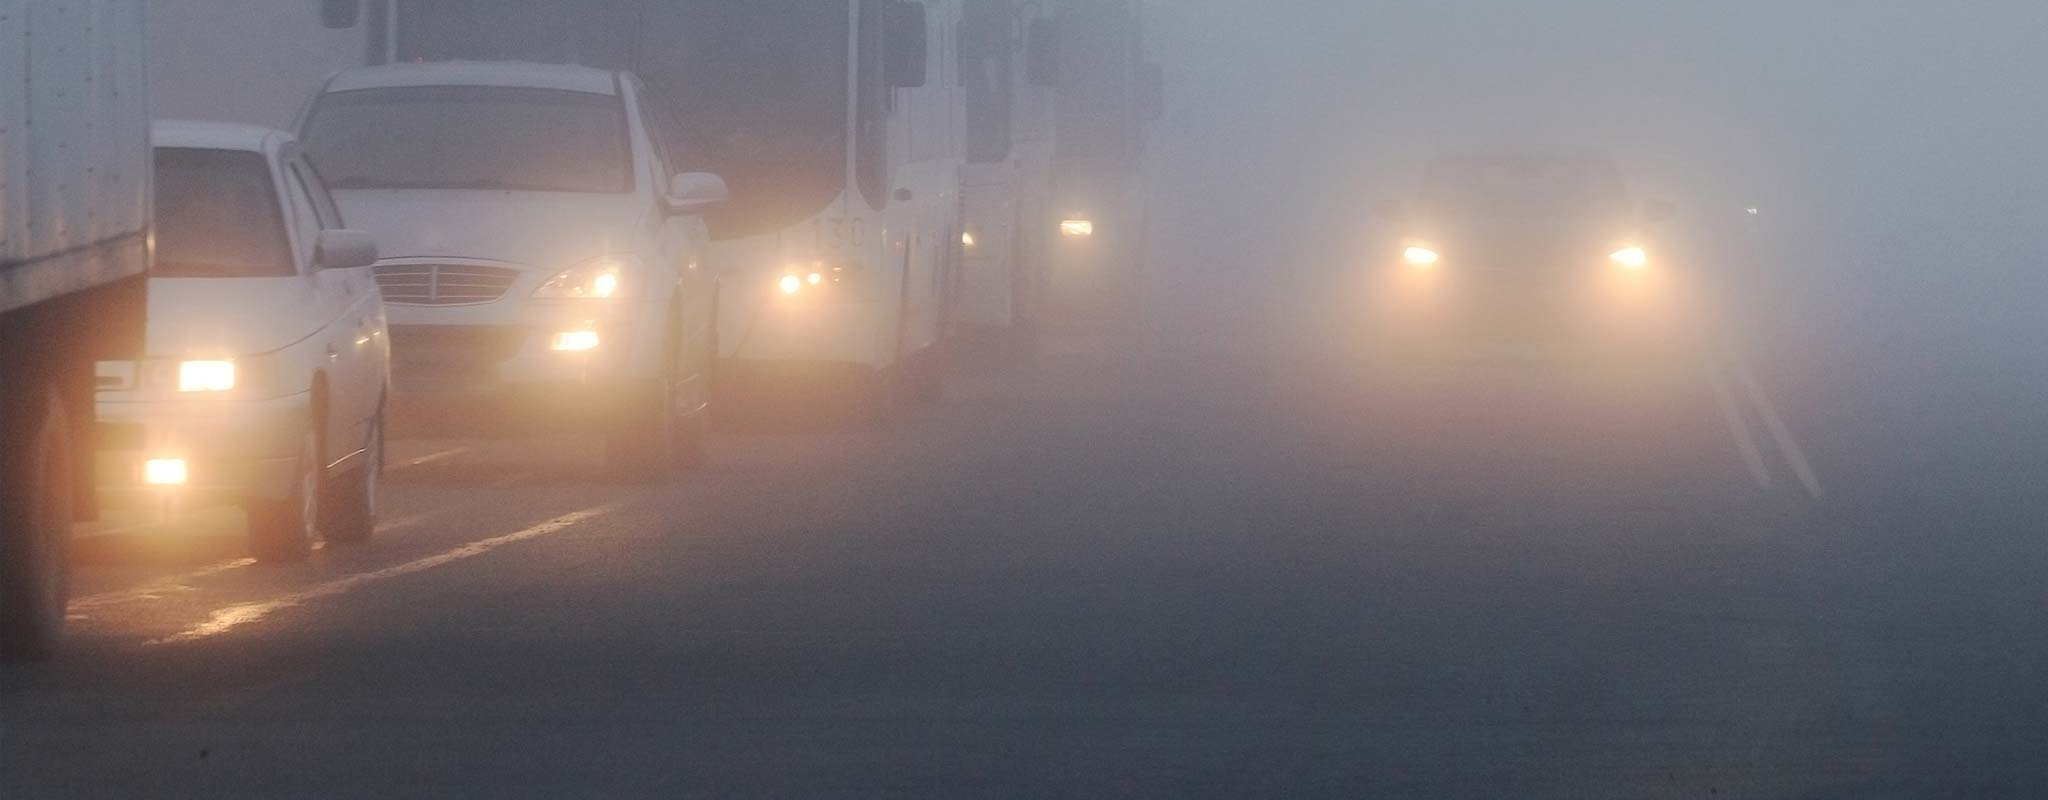 Vehicles on a foggy highway.